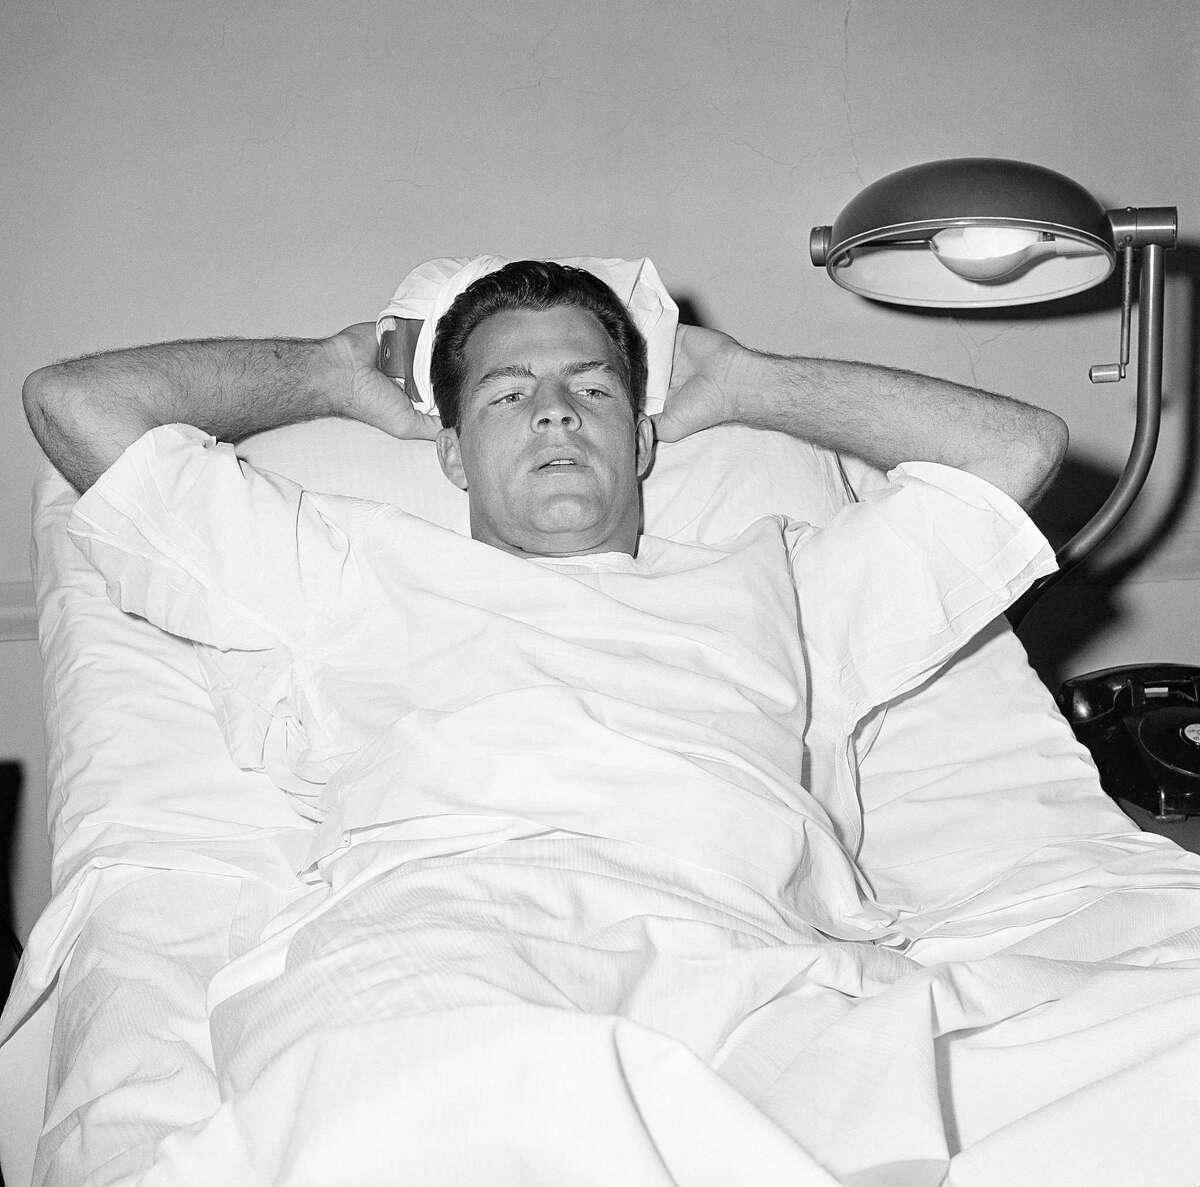 In this Nov. 22, 1960 file photo, New York Giants player Frank Gifford lies in a bed holding an ice pack on his head at St. Elizabeth's Hospital in New York.